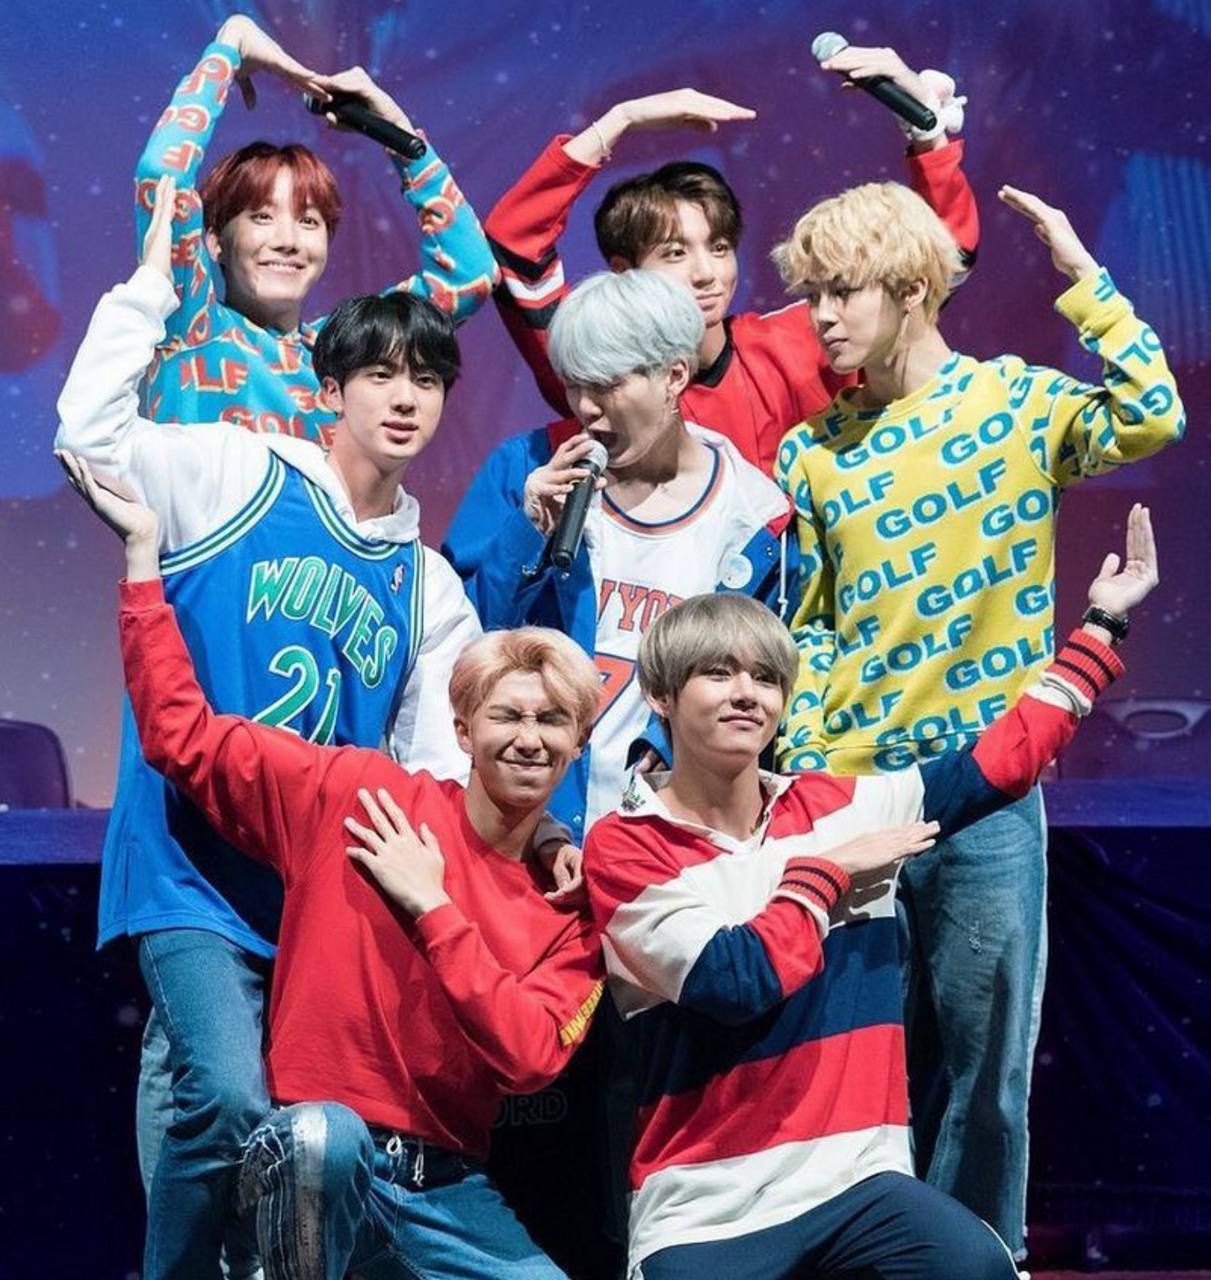 Here S How Bts Members Will Be As Fathers In The Future According